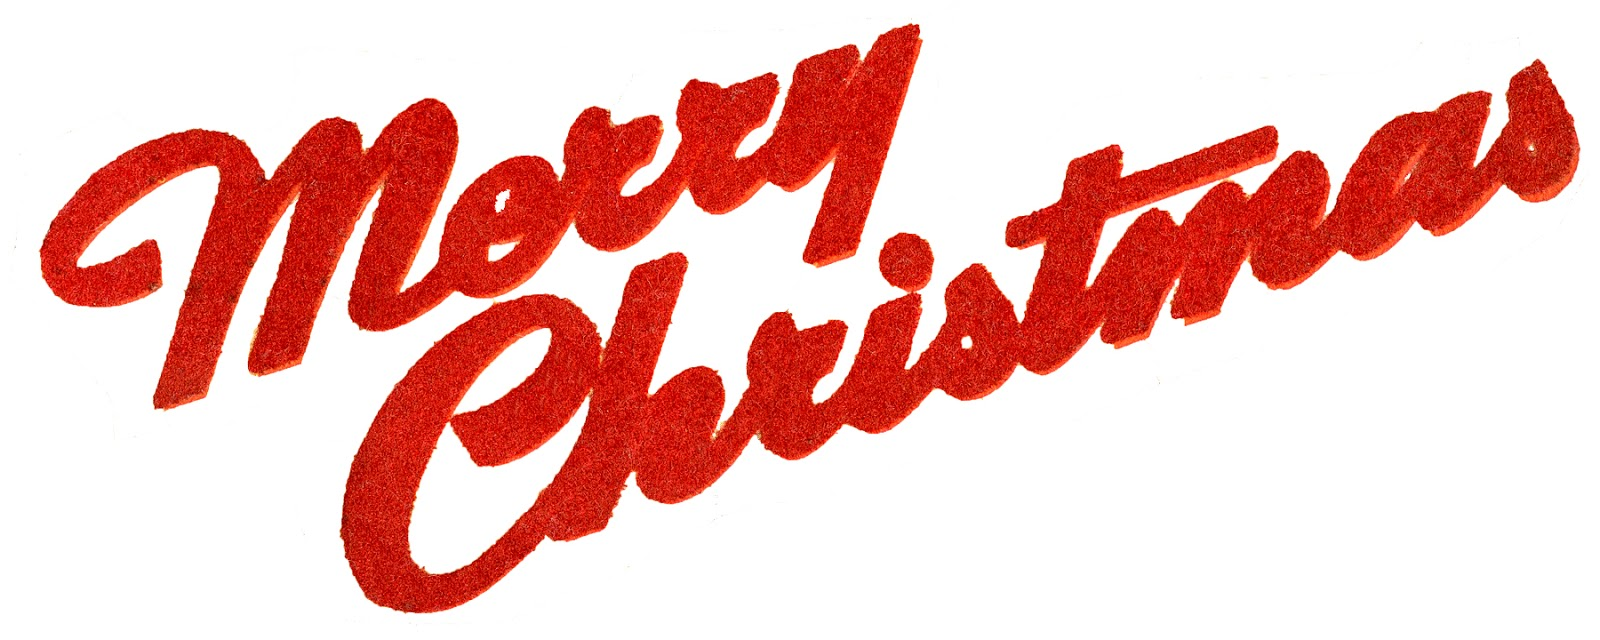 Retro Typography - Flocked Merry Christmas - The Graphics Fairy